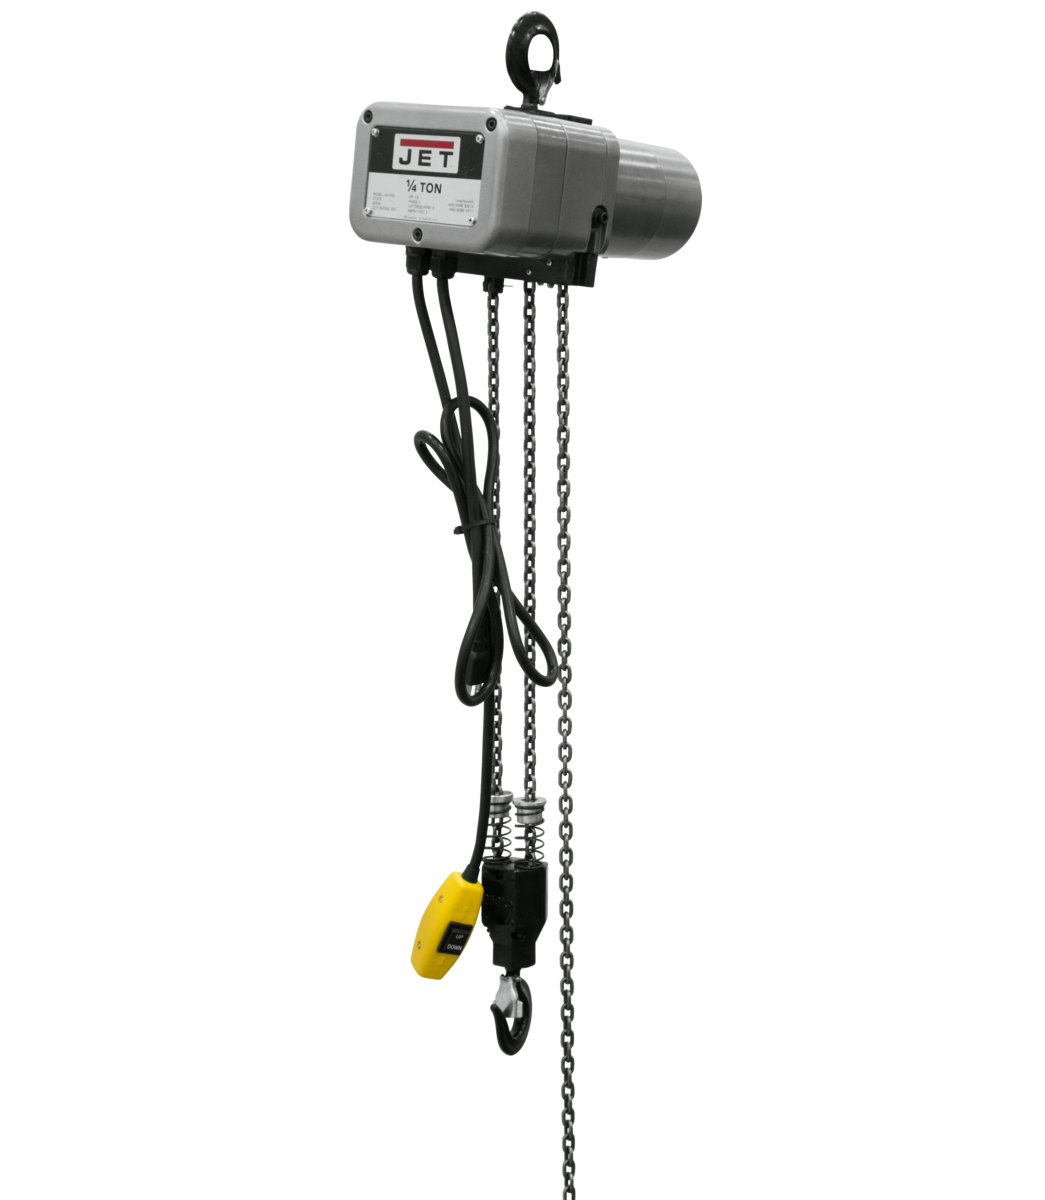 JSH-550-15 1/4-Ton Electric Chain Hoist 1-Phase 15' lift